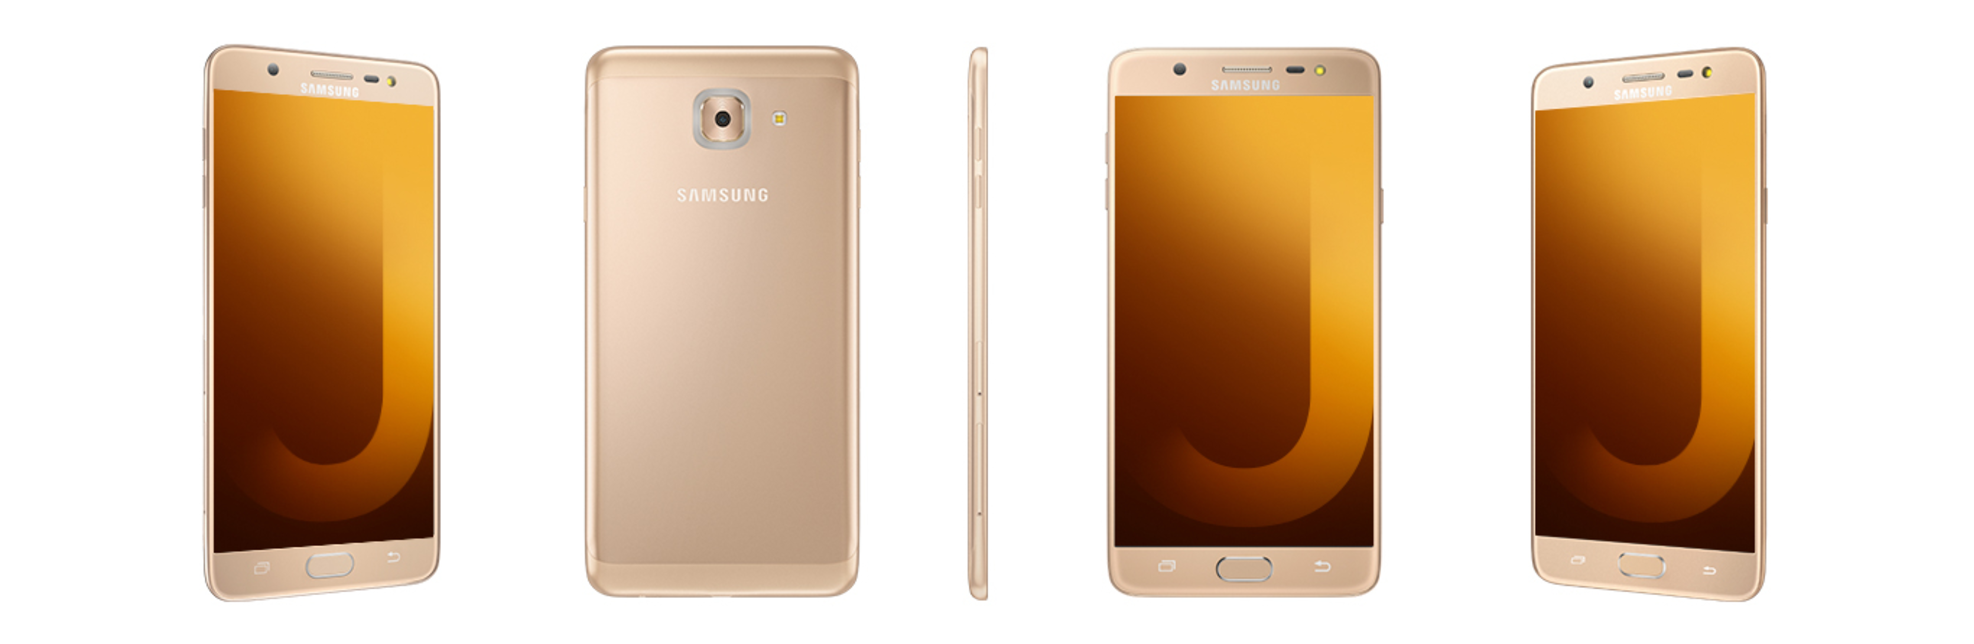 Samsung Galaxy J7 Pro and J7 Max